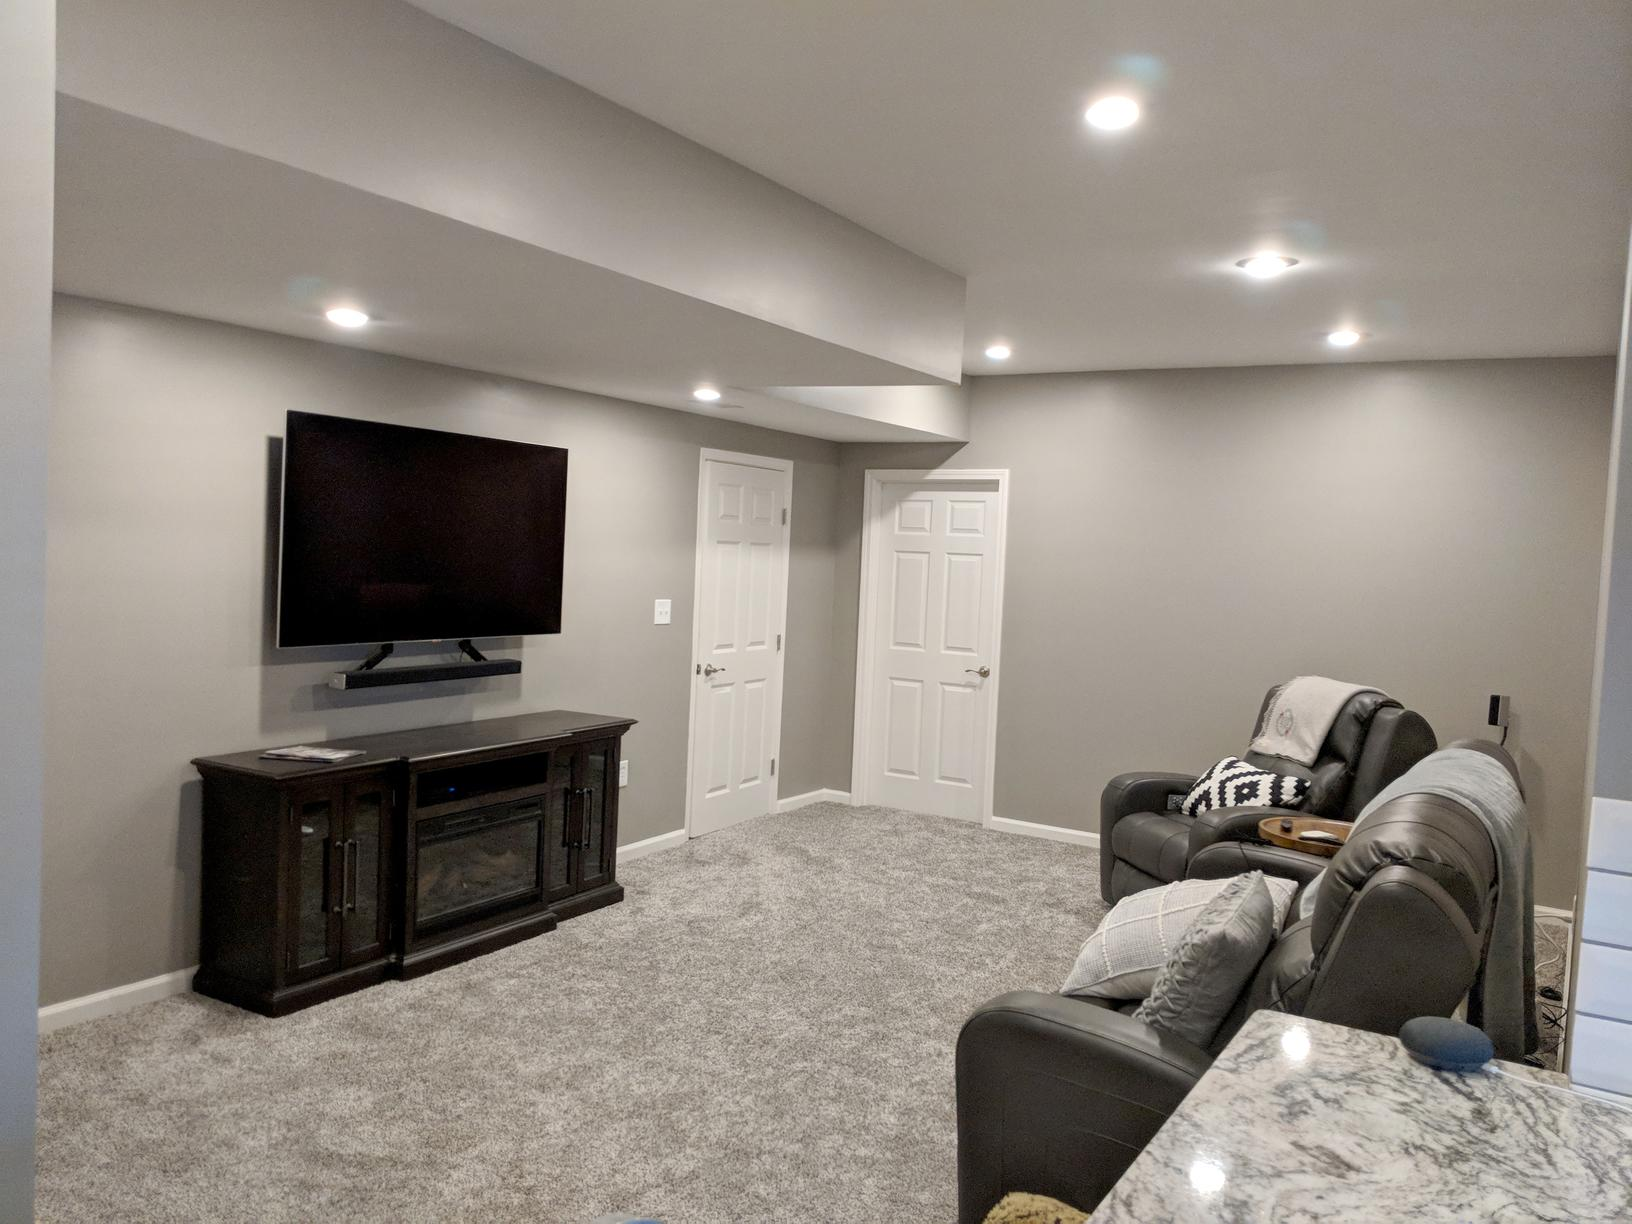 Basement Remodel with Wet Bar in Kansas City, MO - After Photo